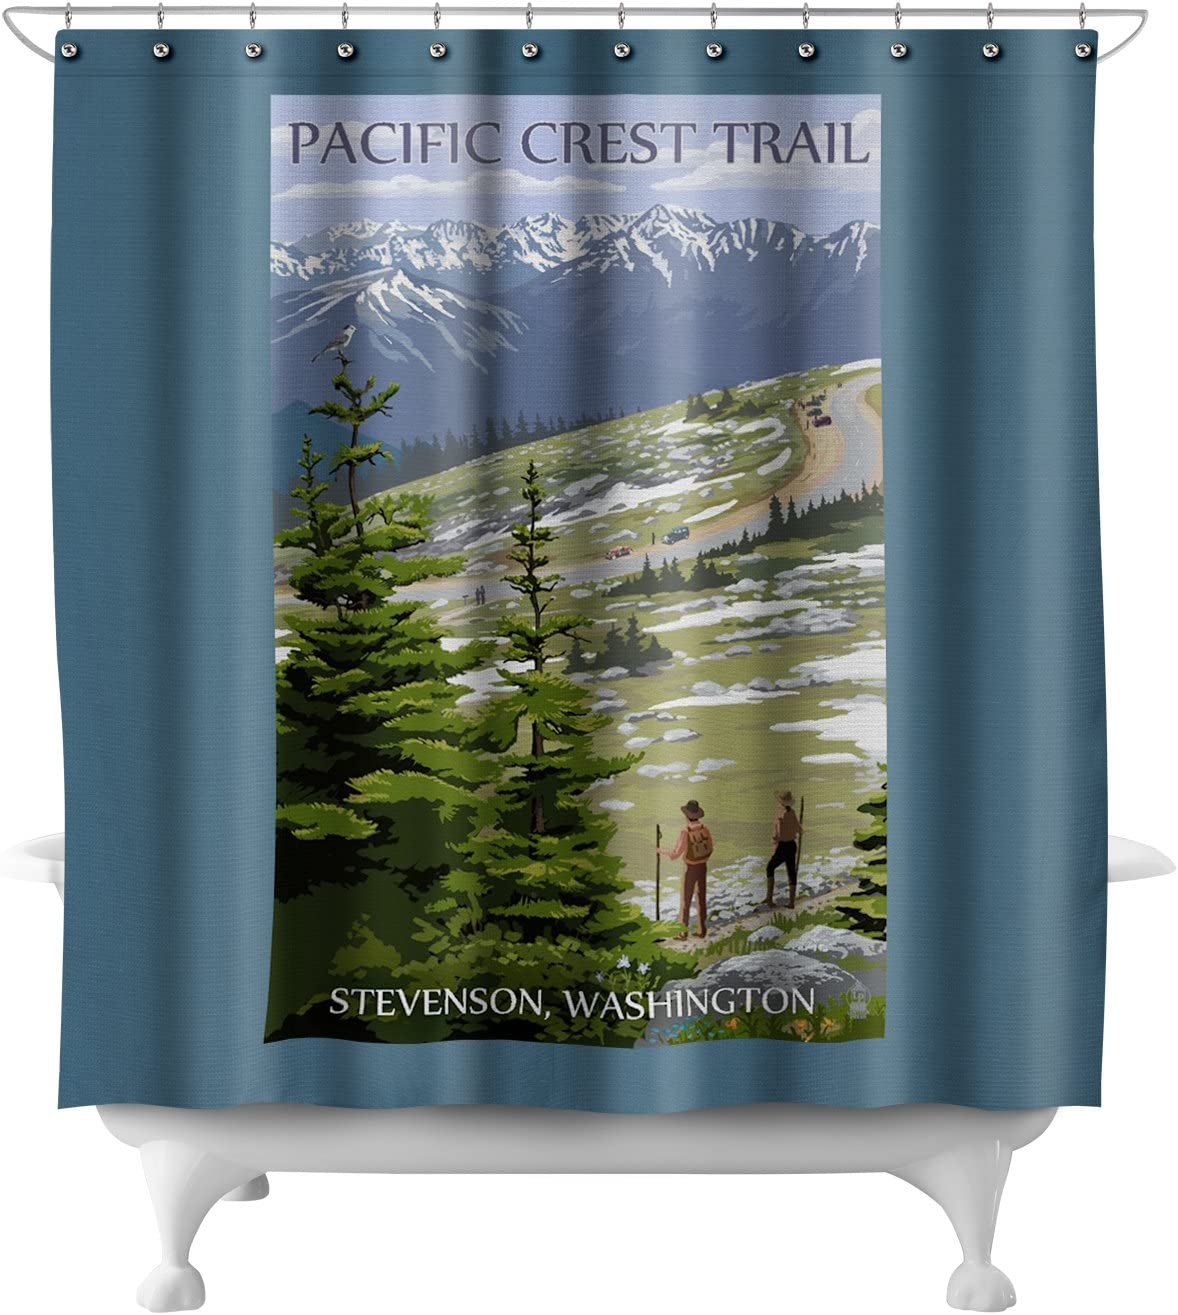 Stevenson, Washington - Pacific Crest Trail and Hikers (71x74 Polyester Shower Curtain)